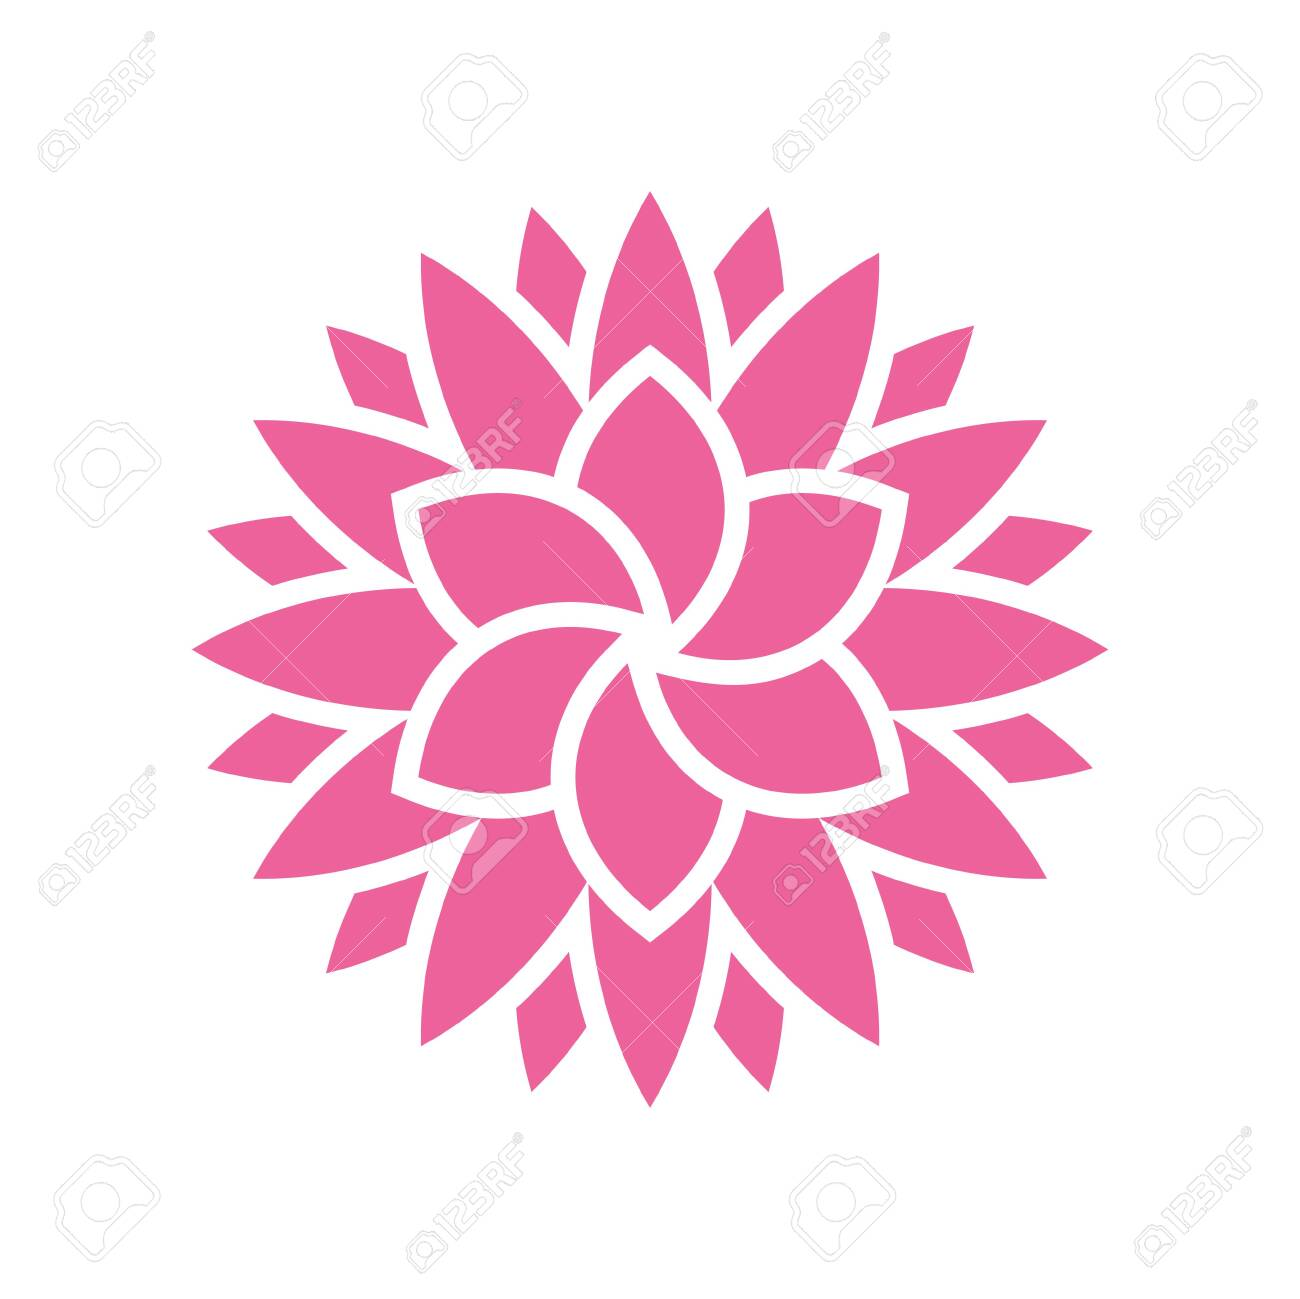 Lotos Flower Icon On Background For Graphic And Web Design Simple Royalty Free Cliparts Vectors And Stock Illustration Image 127631297,Royal Blue Wedding Cupcake Designs